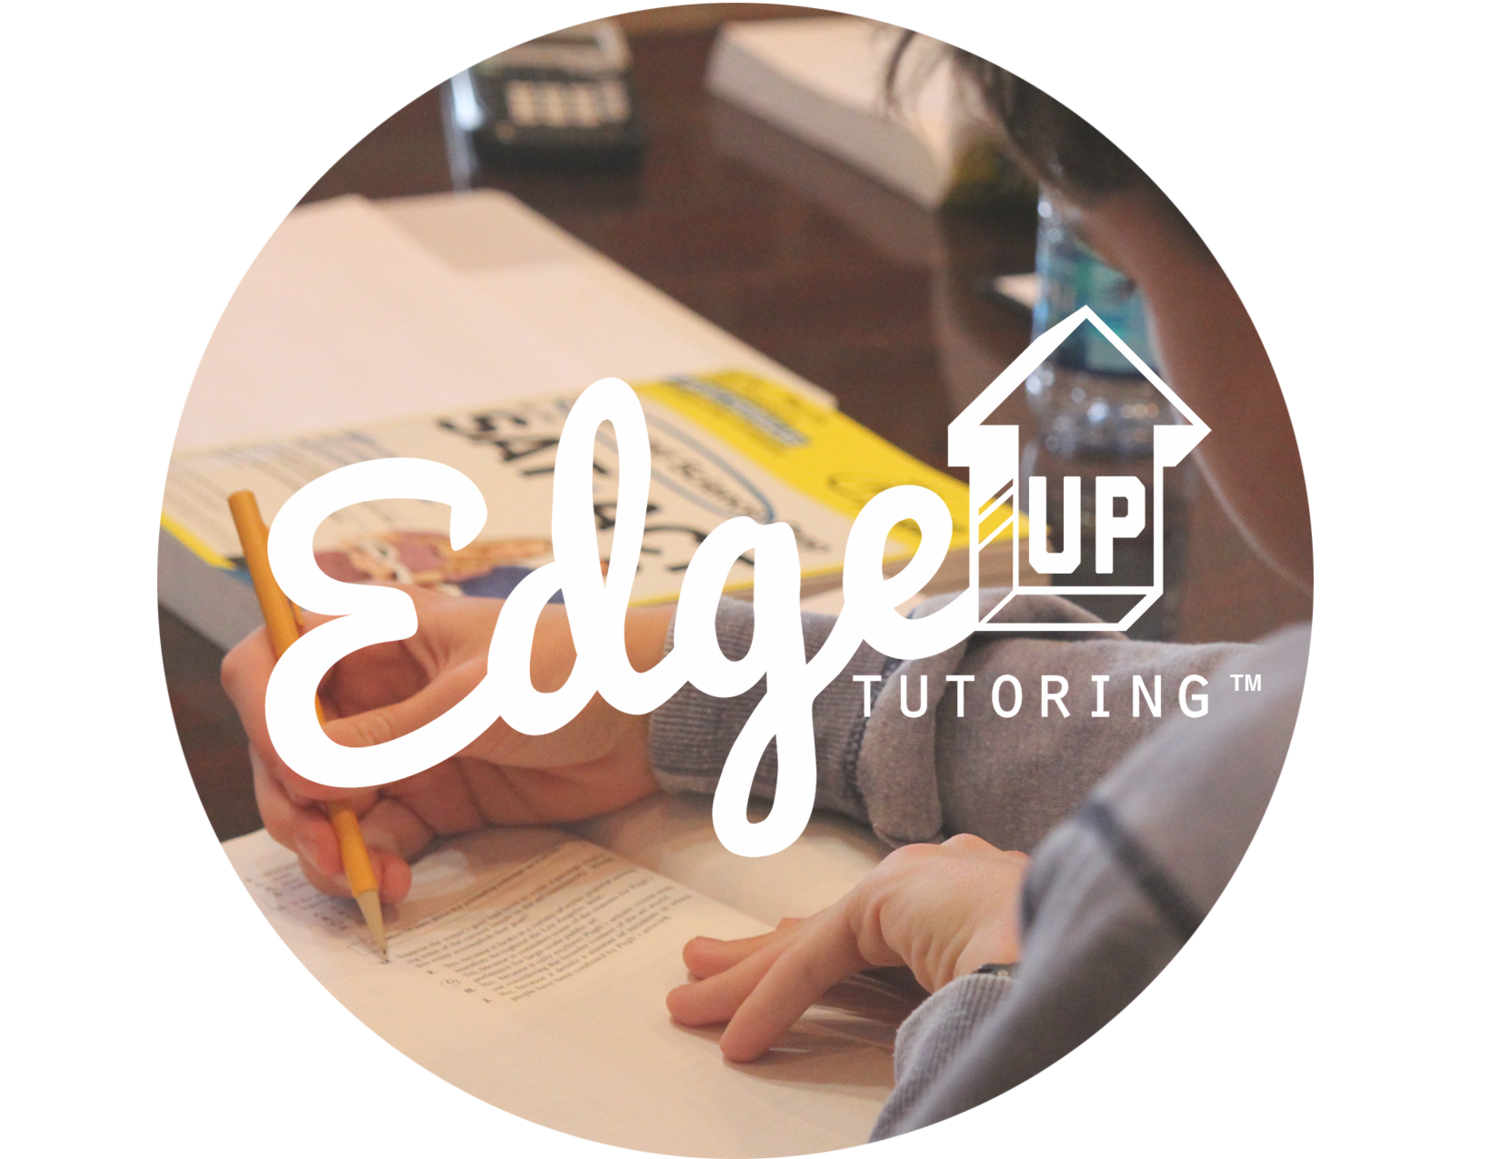 EdgeUp Tutoring